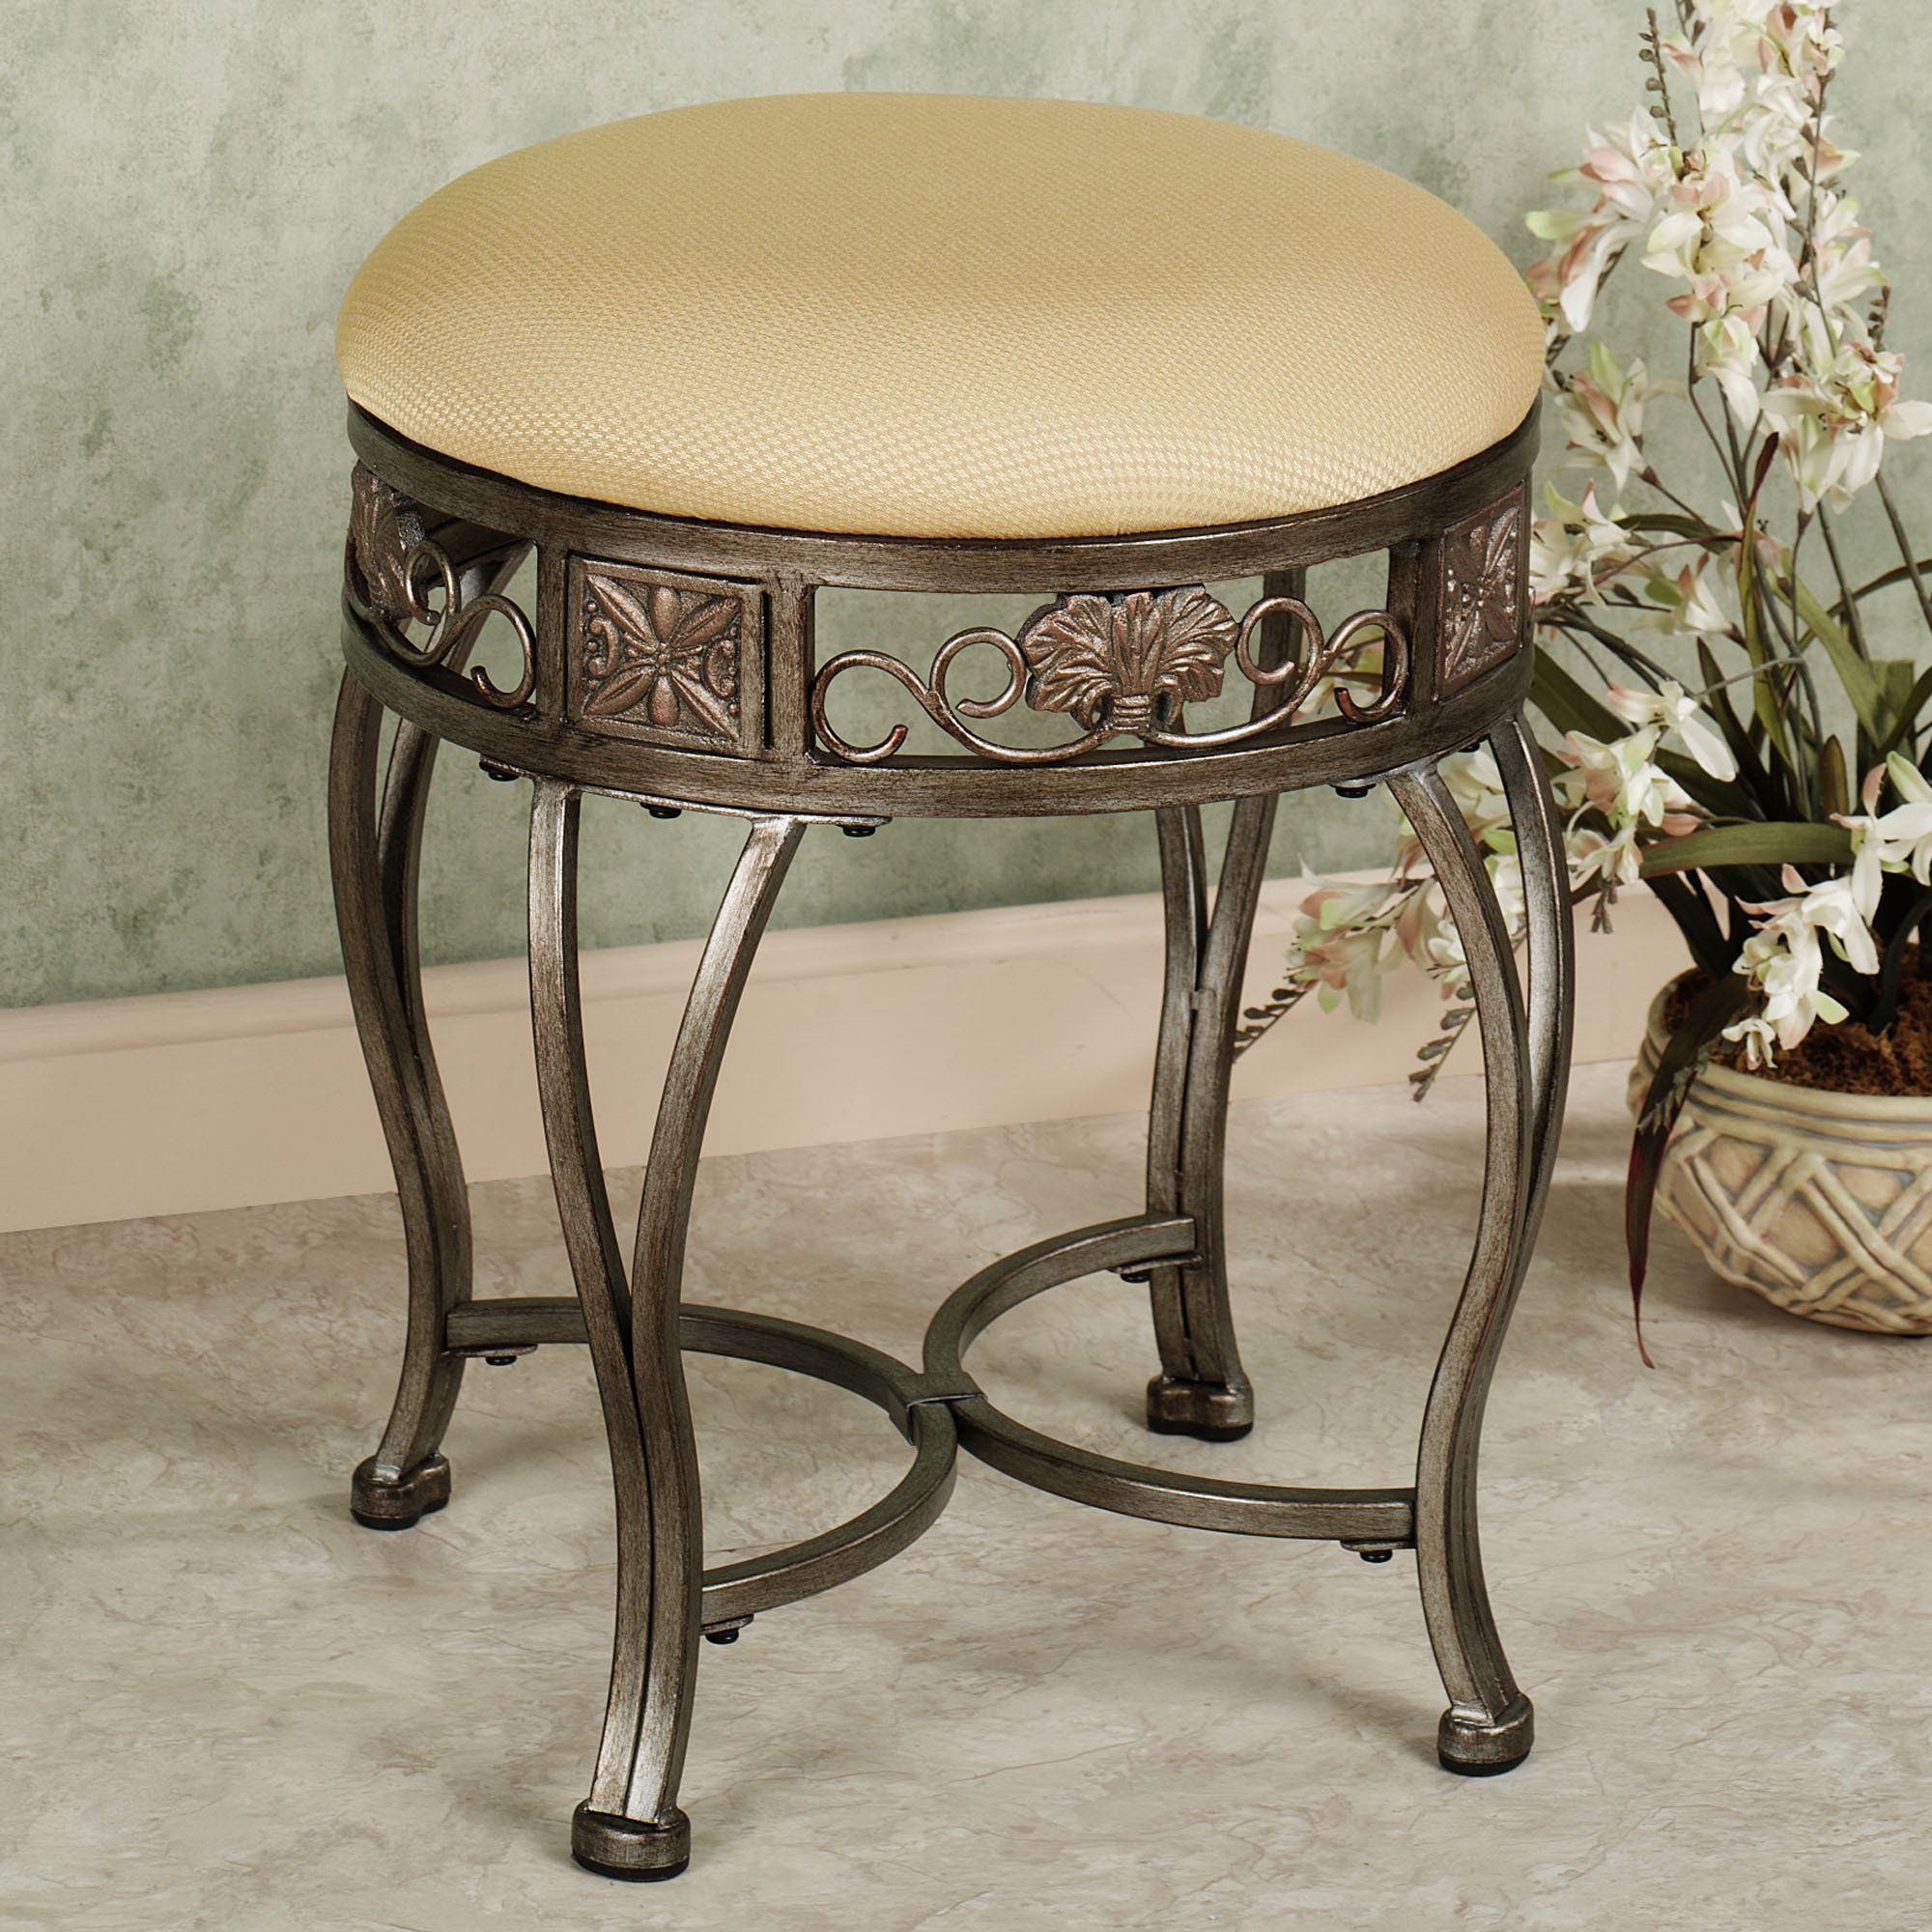 Good Contemporary Vanity Stool For Bathroom With Round Shape And Vintage Curve  Legs